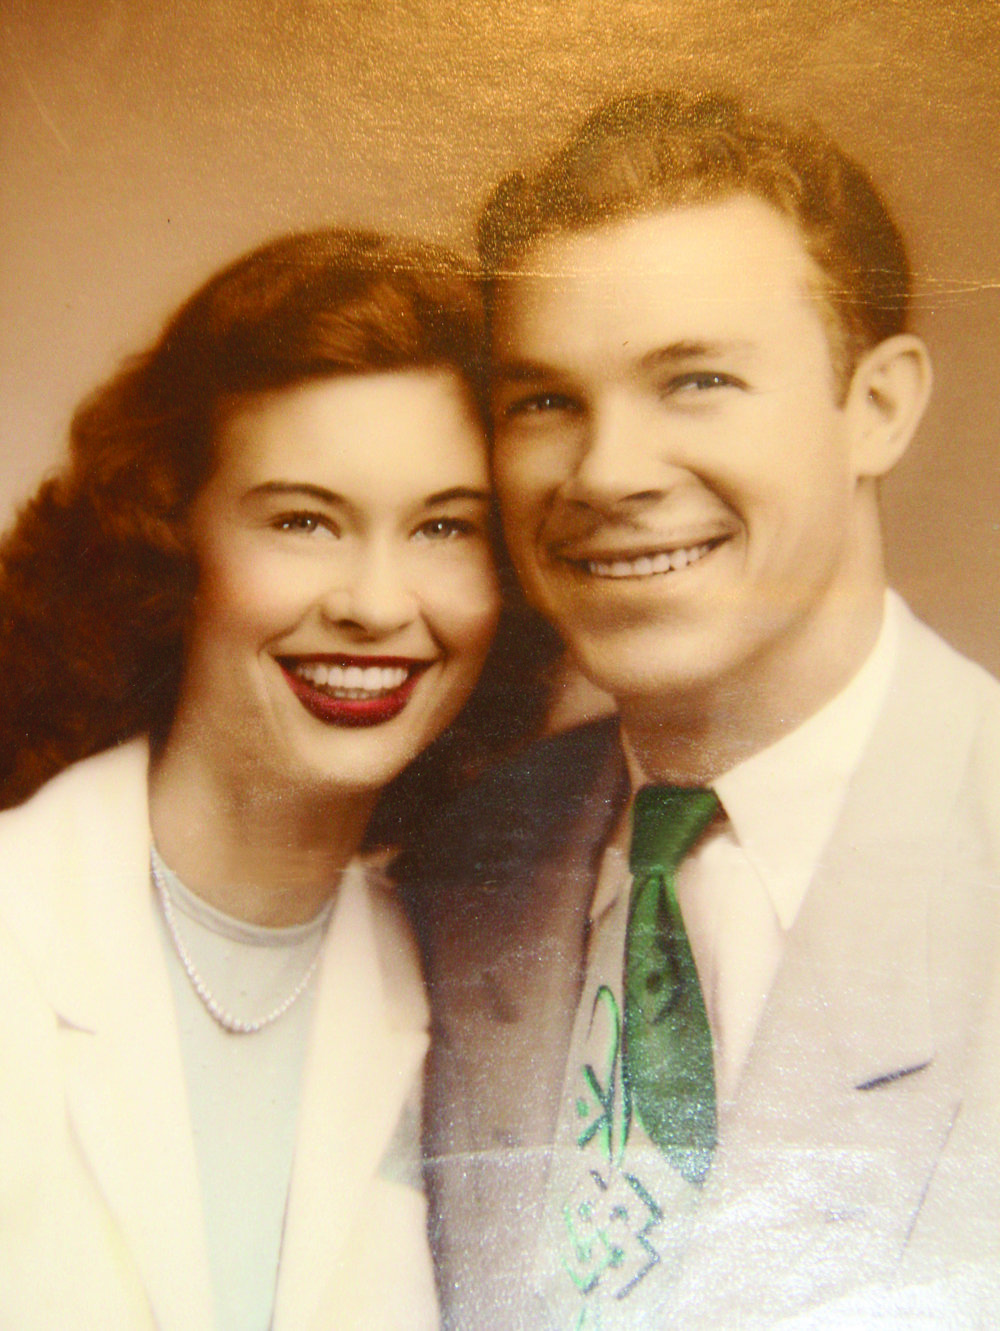 Bobby and his wife, Mary, were married during March 1951.